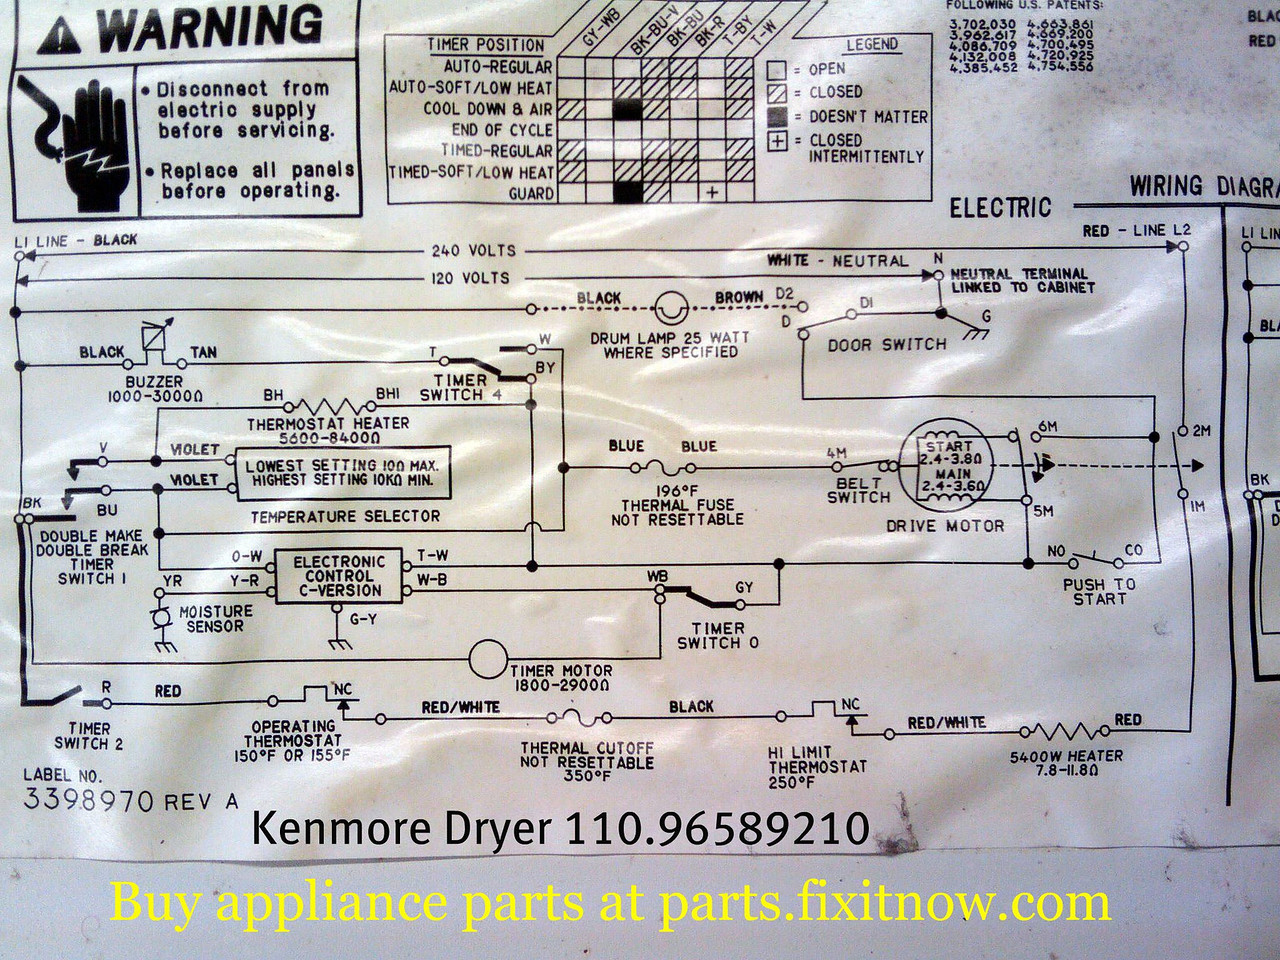 Awesome Kenmore Washer Wiring Diagram Ideas - Electrical Circuit .